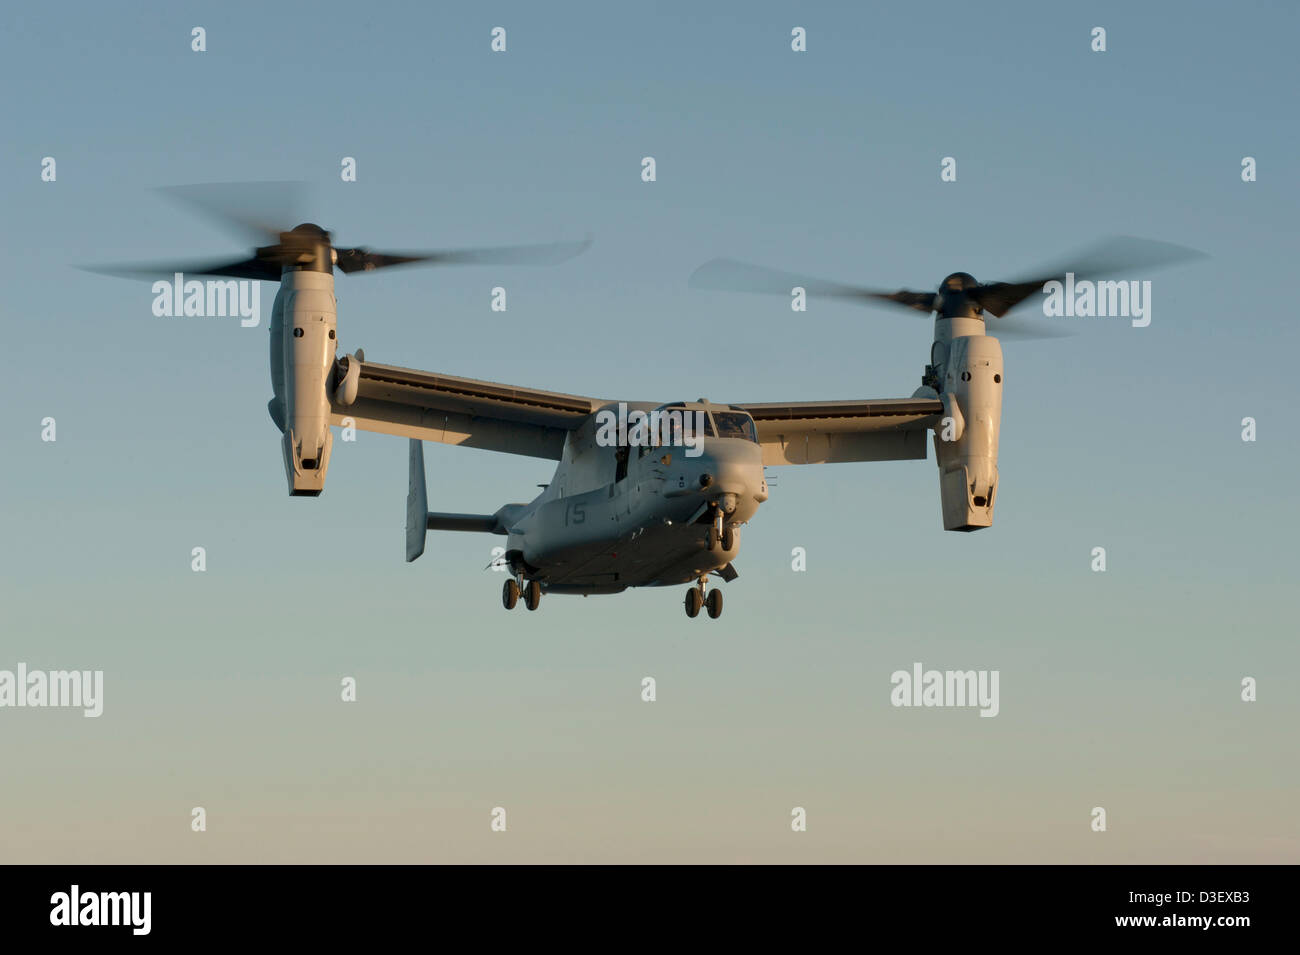 Aerial view of a Marine Corps MV-22 Osprey from the USS John C. Stennis battle group February 16, 2013 on patrol - Stock Image